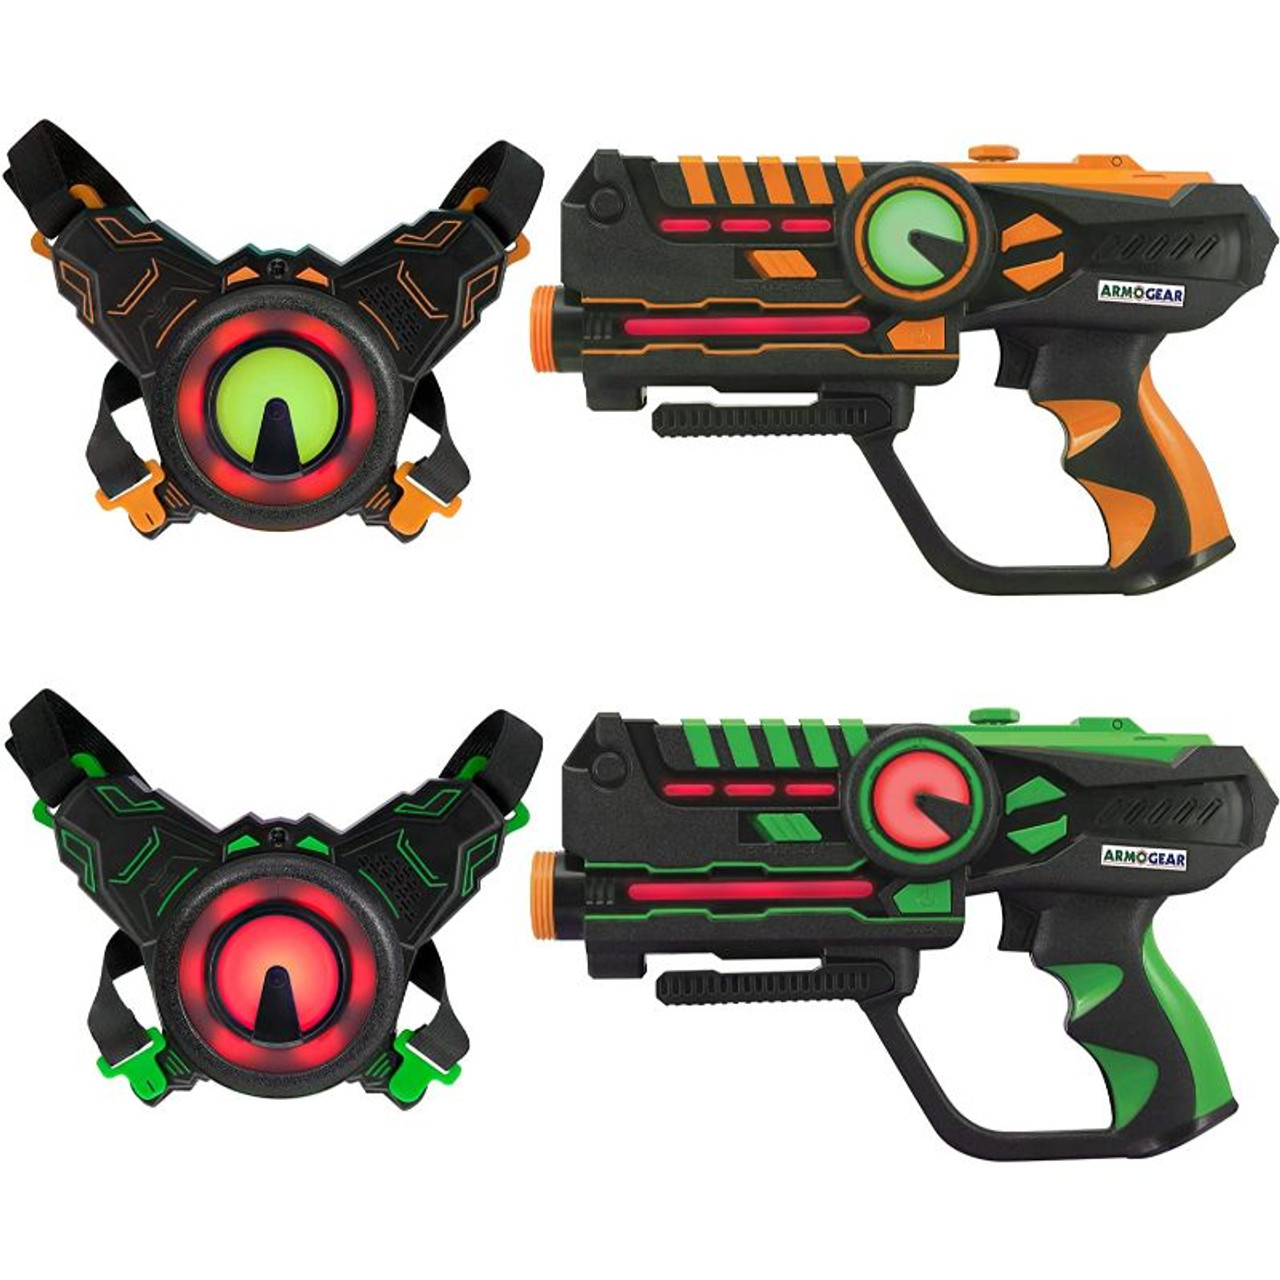 ArmoGear Infrared Laser Tag Guns and Vests Battle Game - 2 Pack